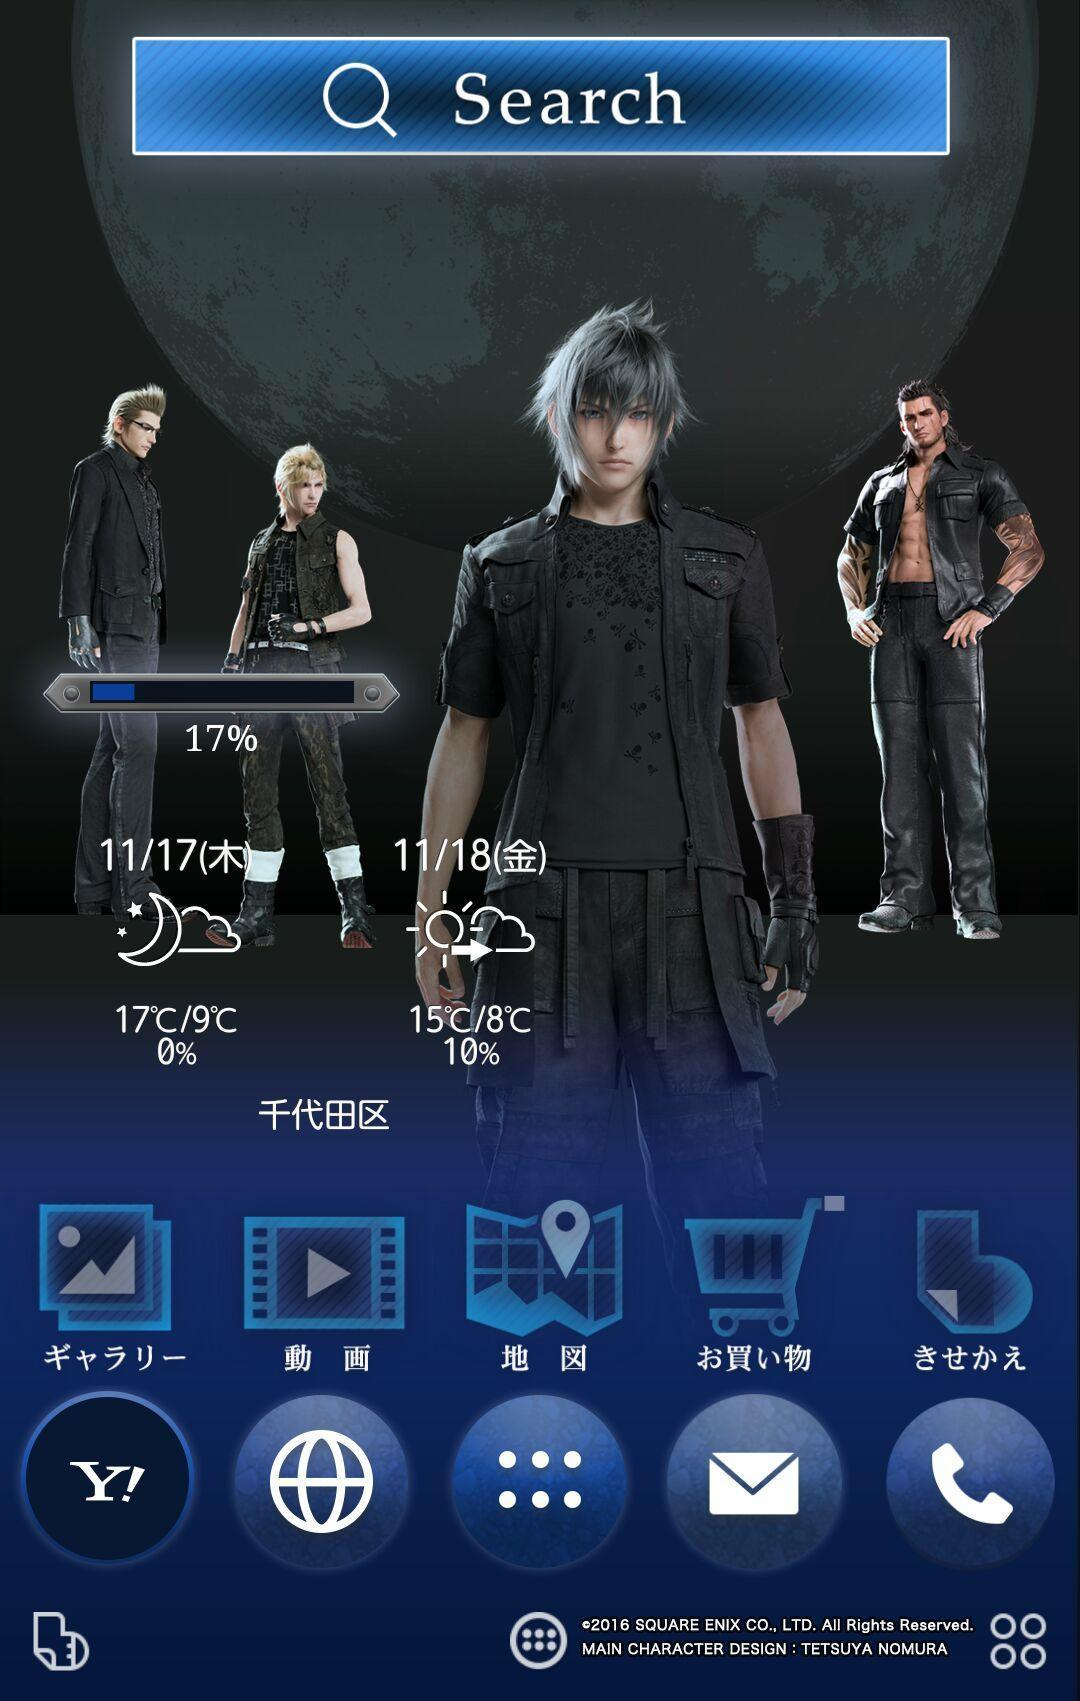 Final Fantasy Xv Ff15 壁紙きせかえ For Android Apk Download